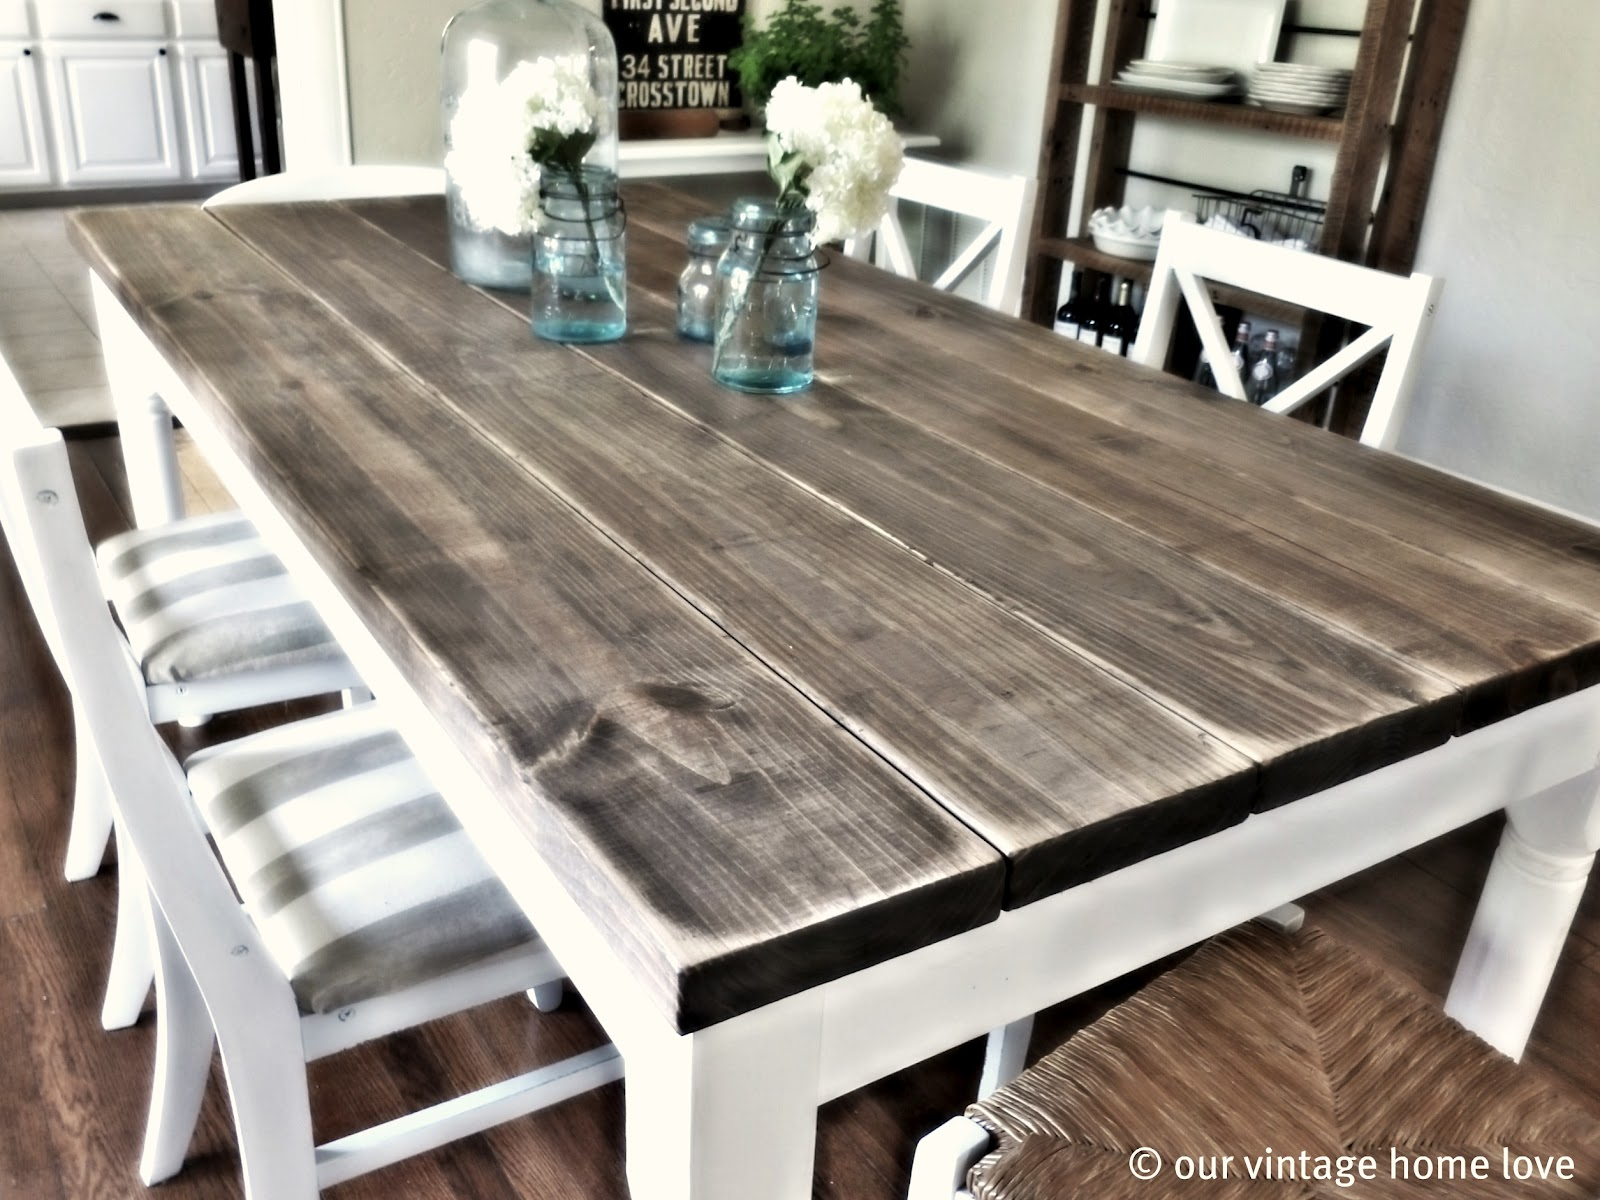 Dining Room Table Tutorial. our vintage home love  Dining Room Table Tutorial